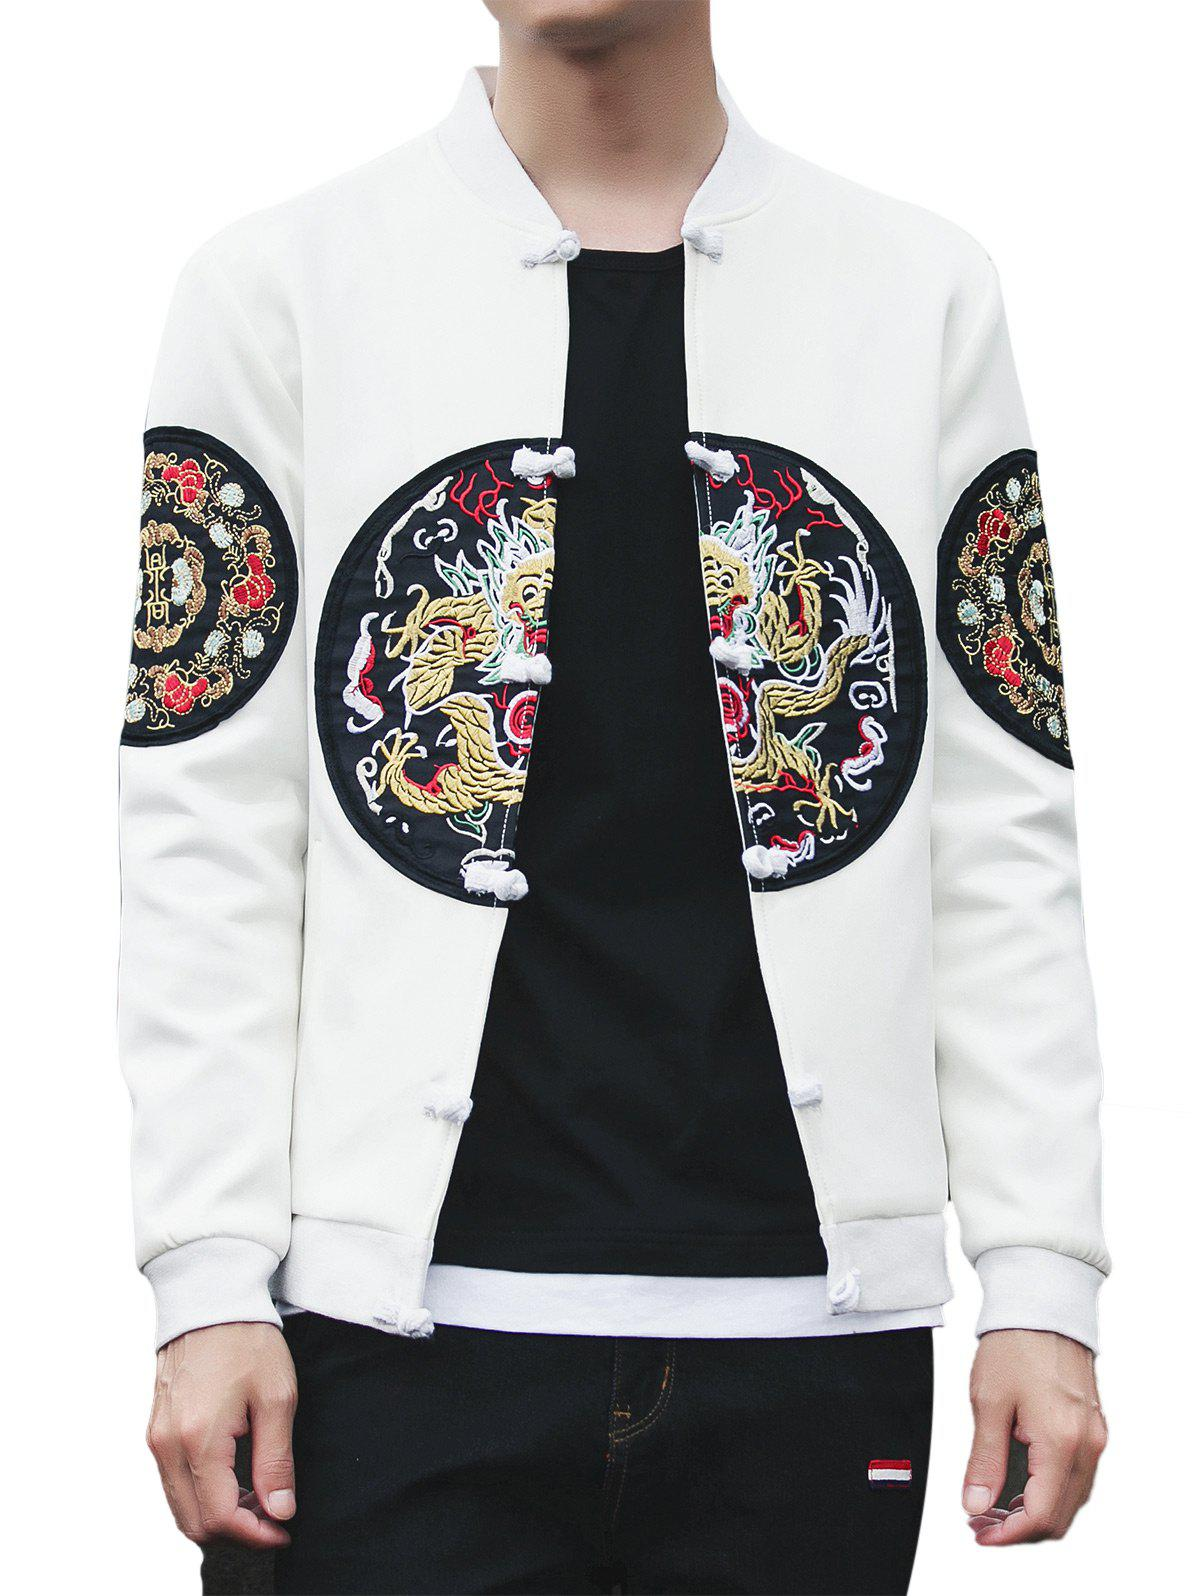 Chinoiserie Graphic Embroidered Jacket flowers branch embroidered chinoiserie fabric corset belt